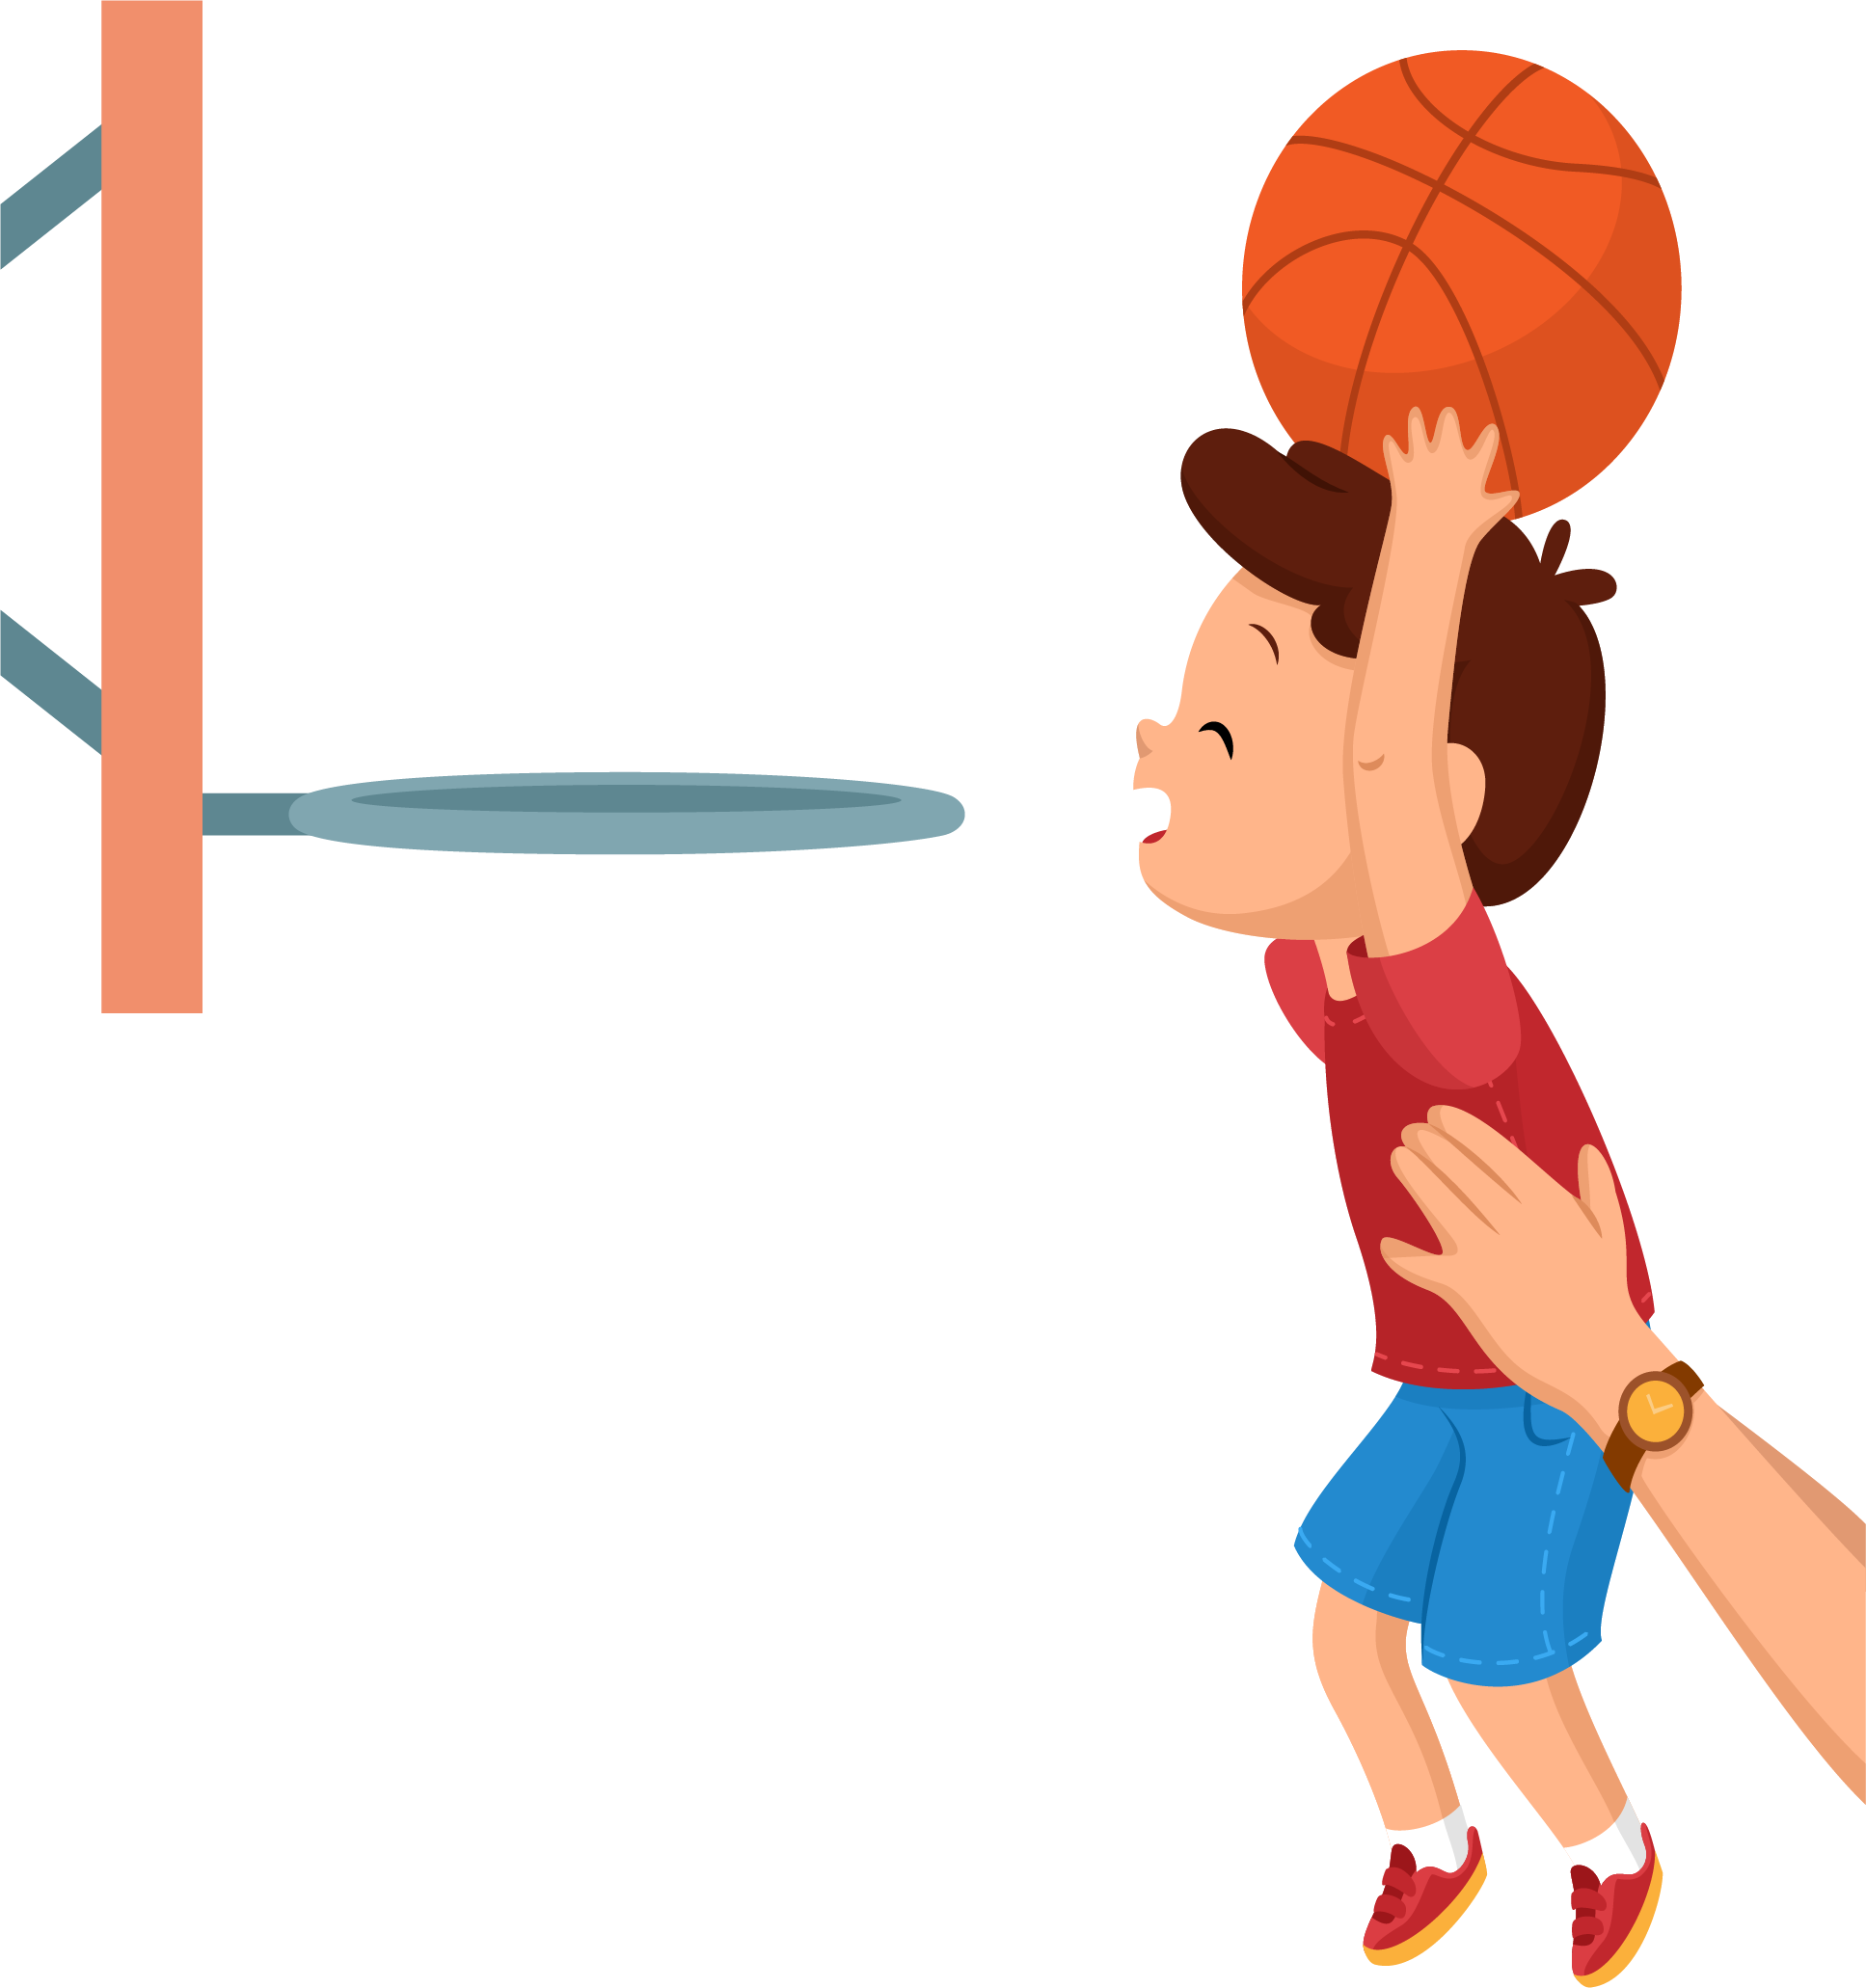 Kid playing on a basketball team clipart clipart royalty free library Basketball Backboard Clip art - Start learning basketball from the ... clipart royalty free library